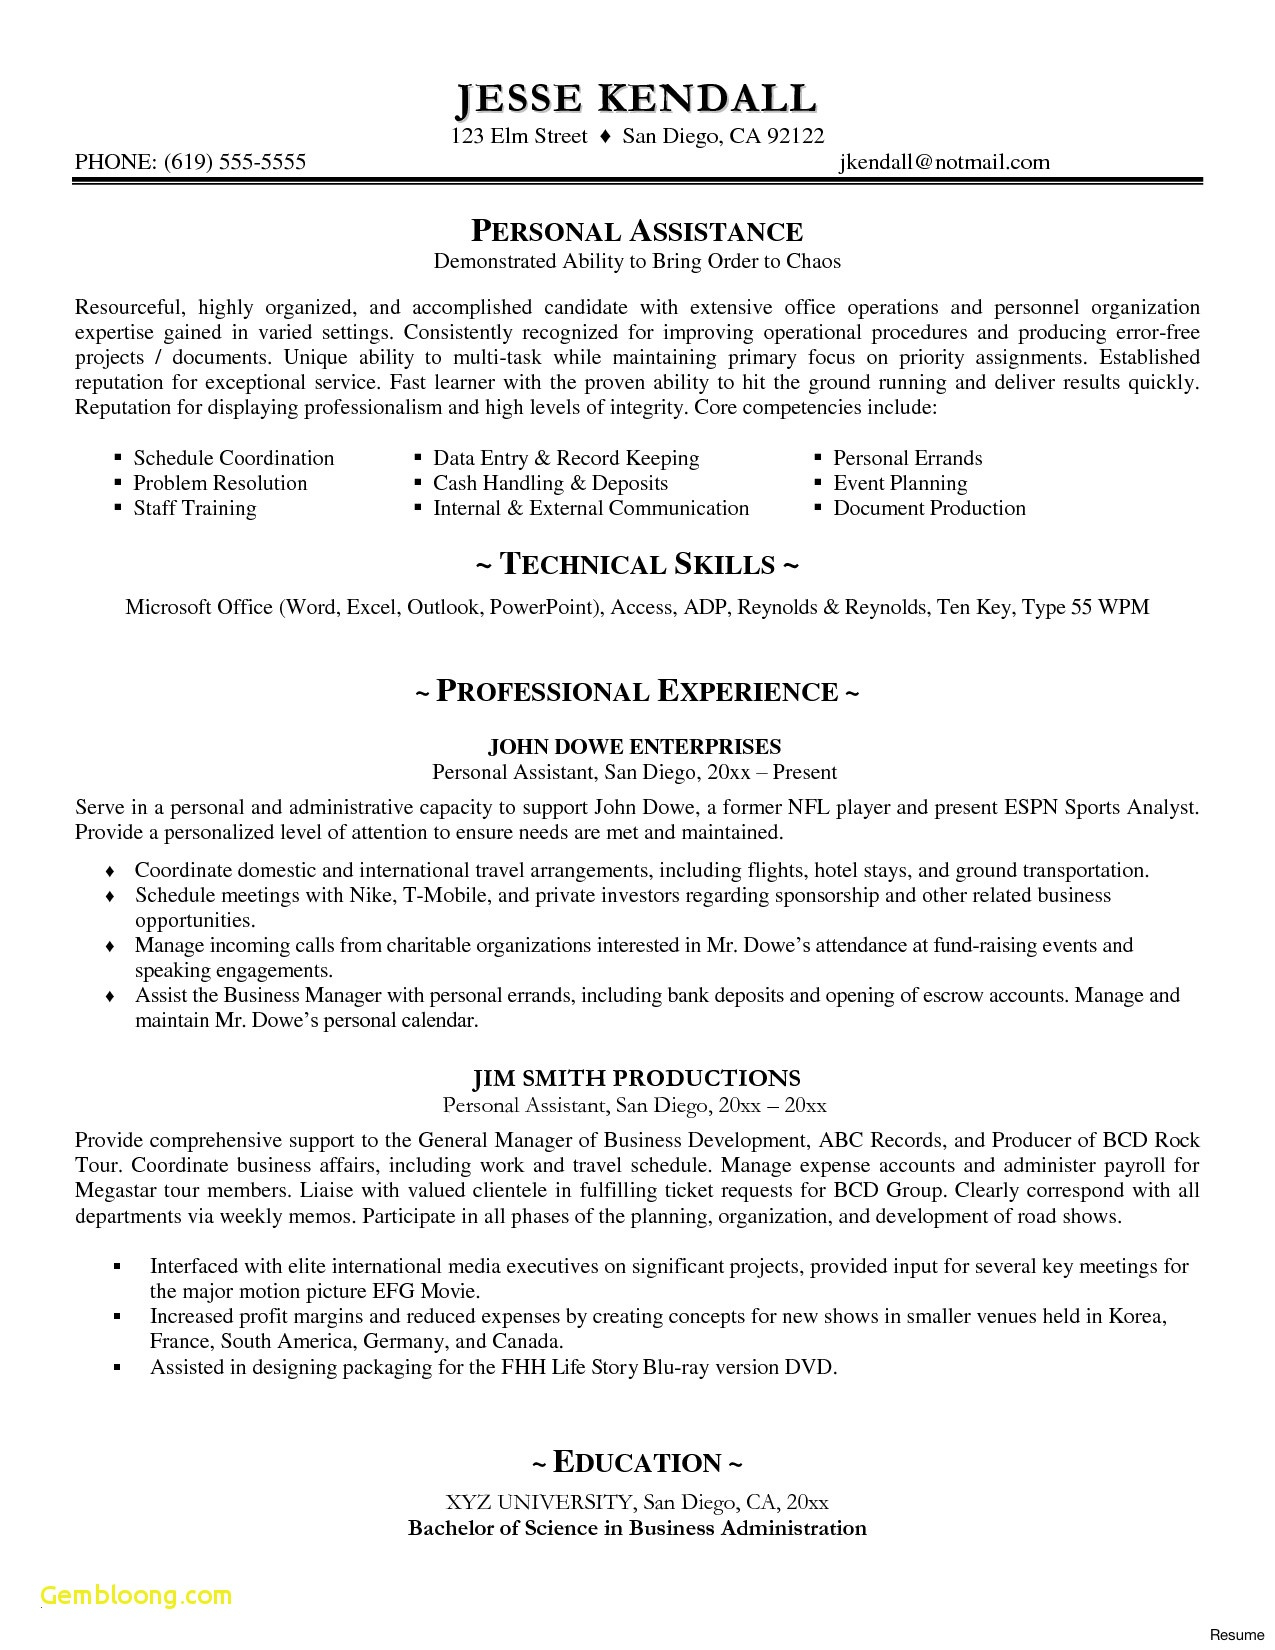 Cover Letter Template Doc Download - Word Resume Template Downloads Legalsocialmobilitypartnership